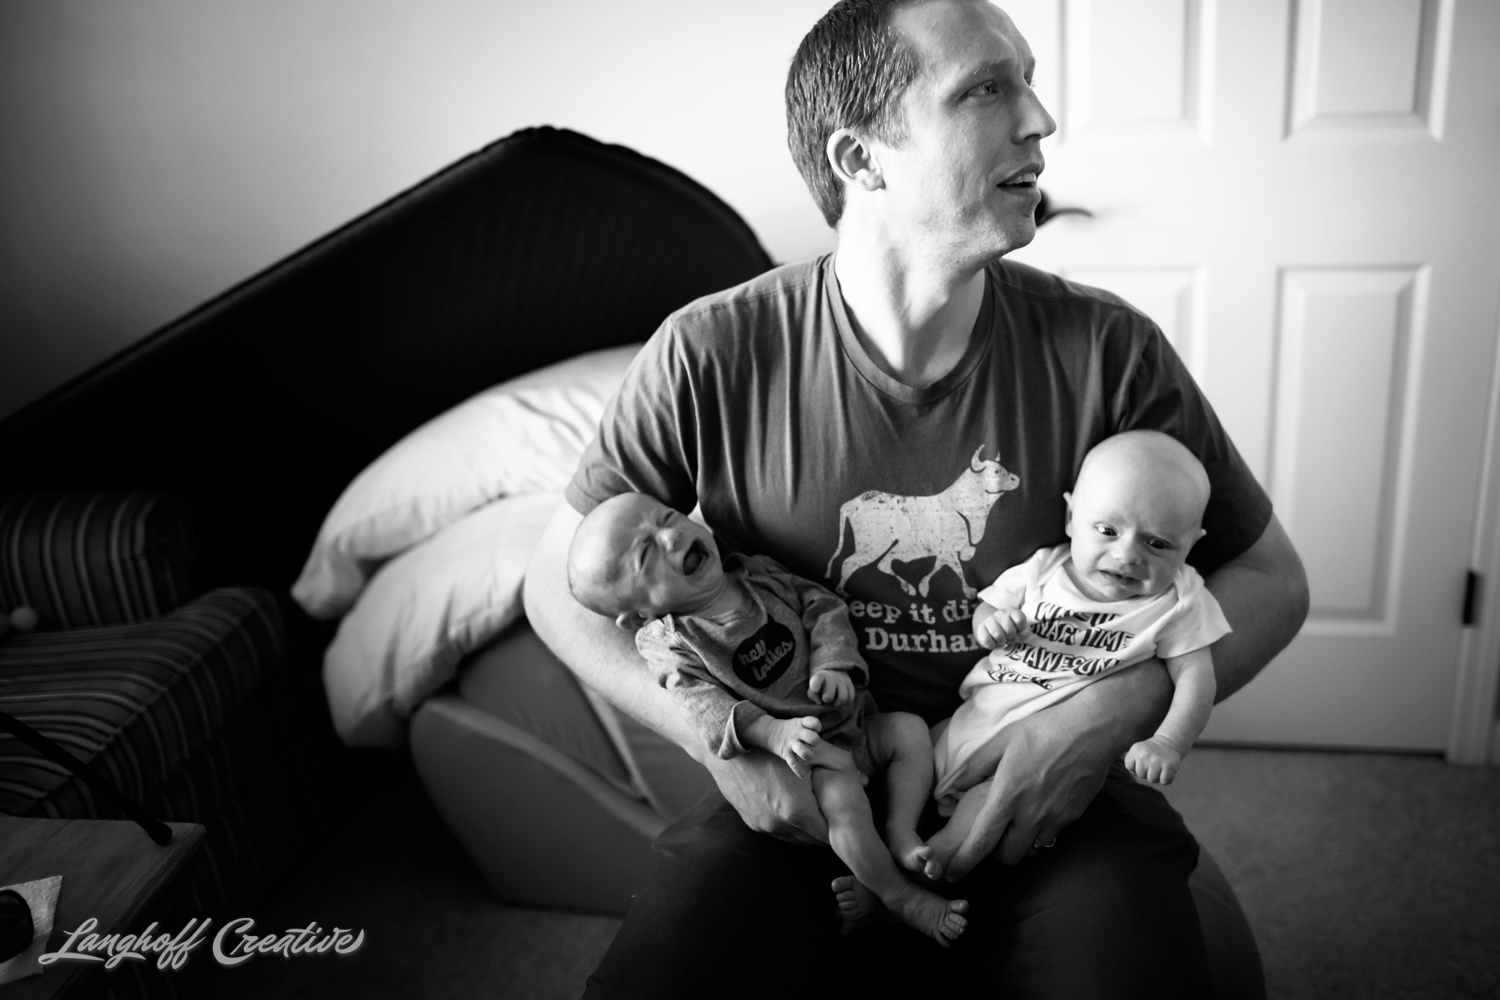 20170211-SchulteFamily-RealLifeSession-DayInTheLife-Twins-LanghoffCreative-DocumentaryFamilyPhotography-RDUphotographer-18-photo.jpg